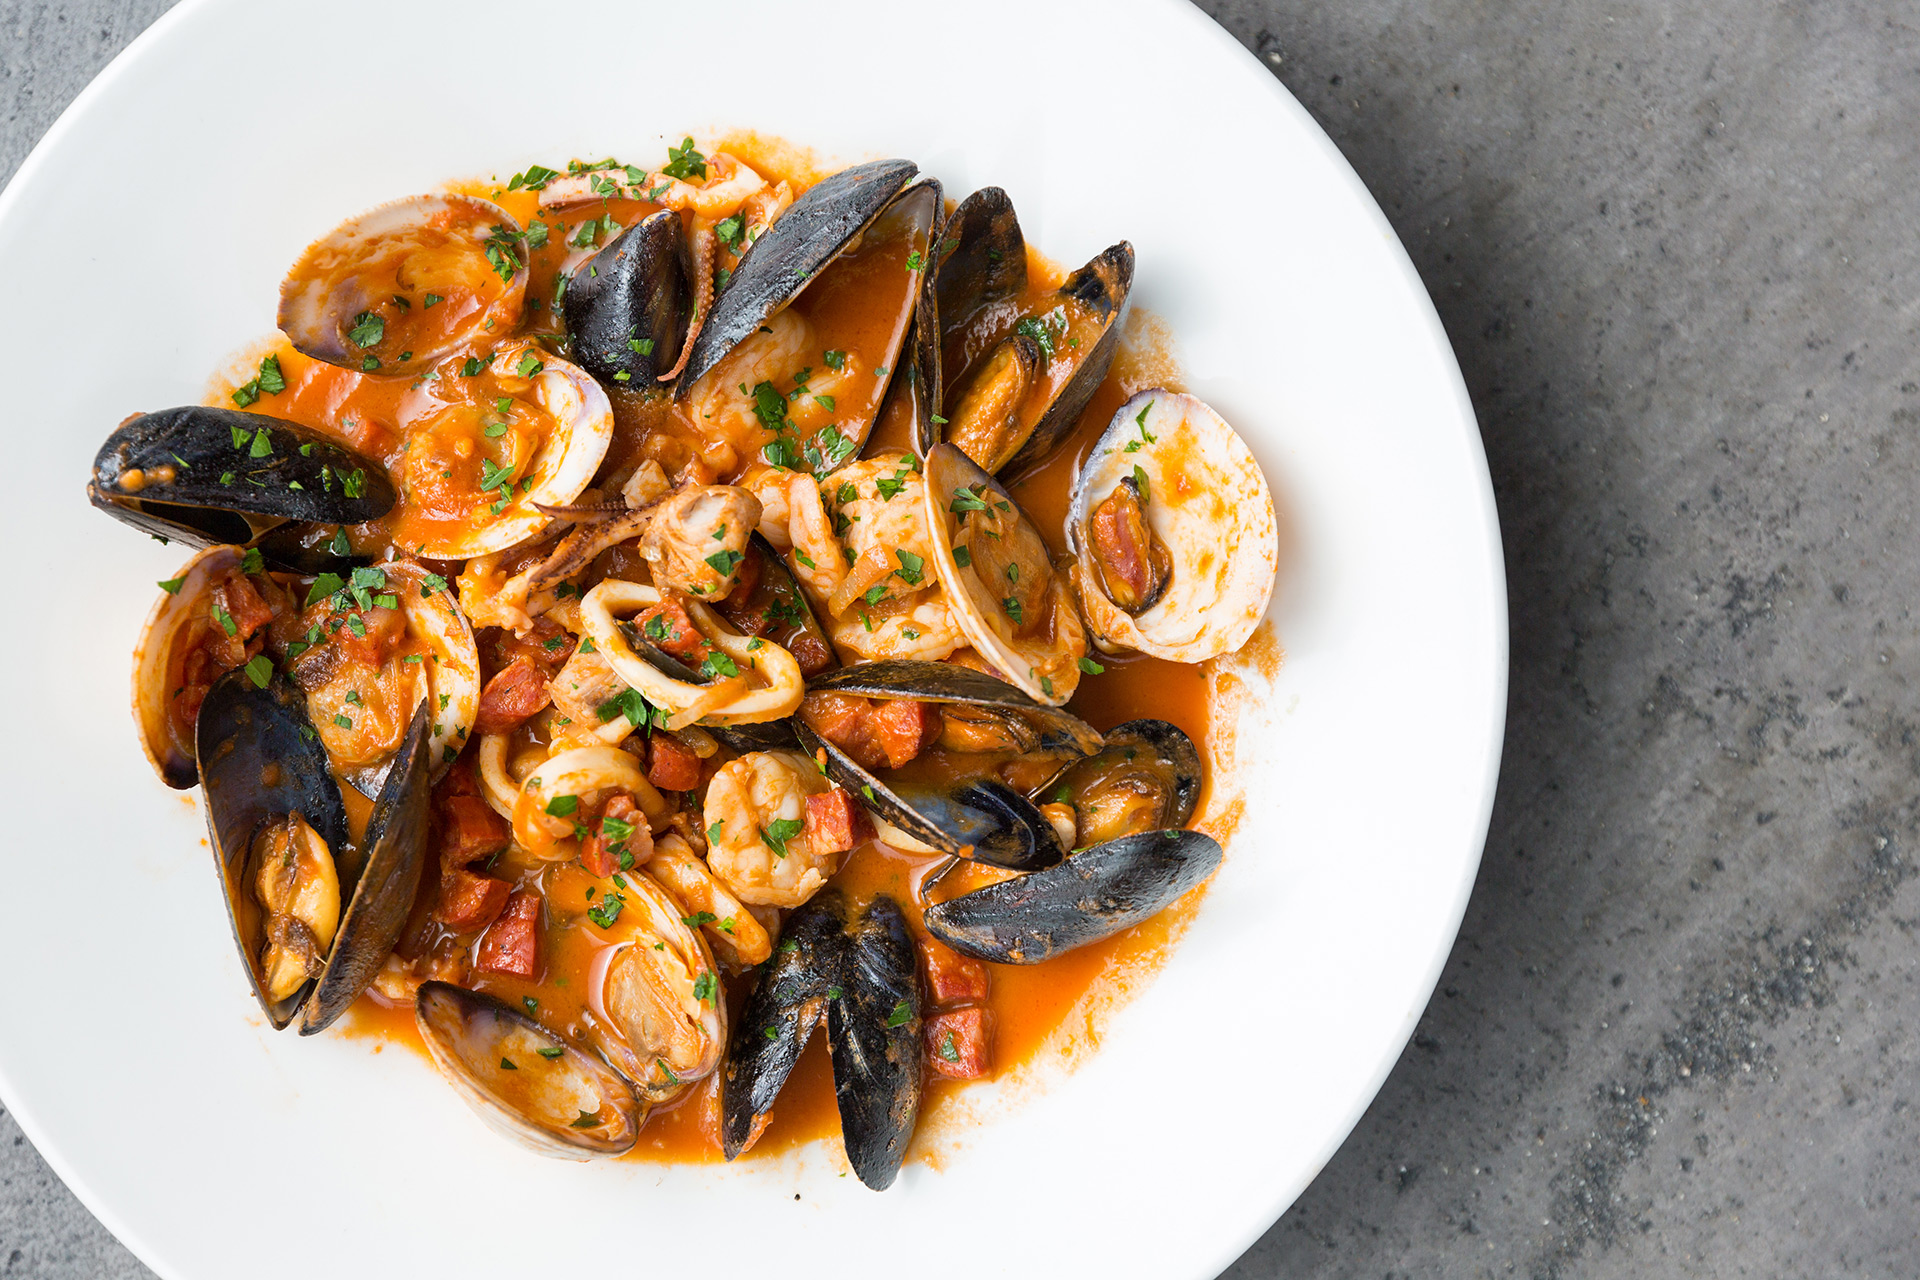 Plate of mussels, clams, shrimp and octopus in red sauce